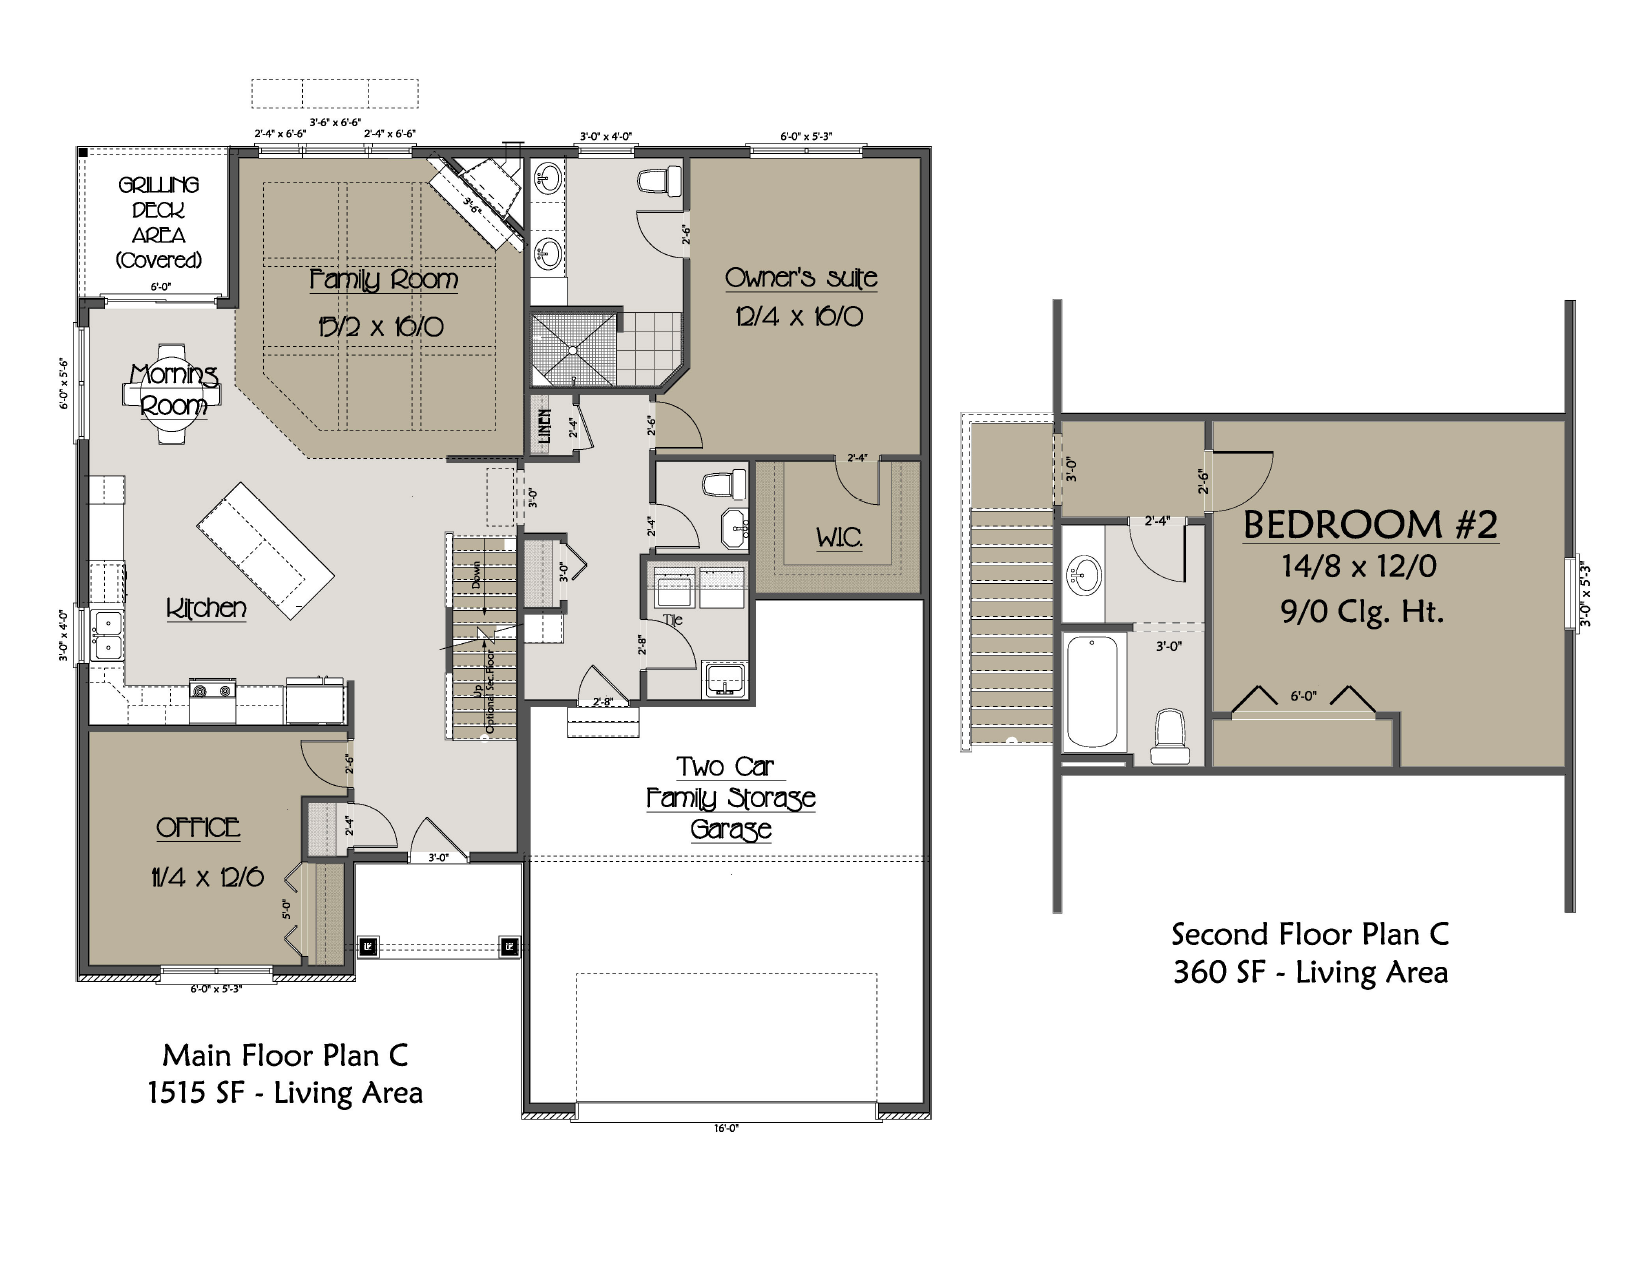 Cluster Home Plan C Floor Plan